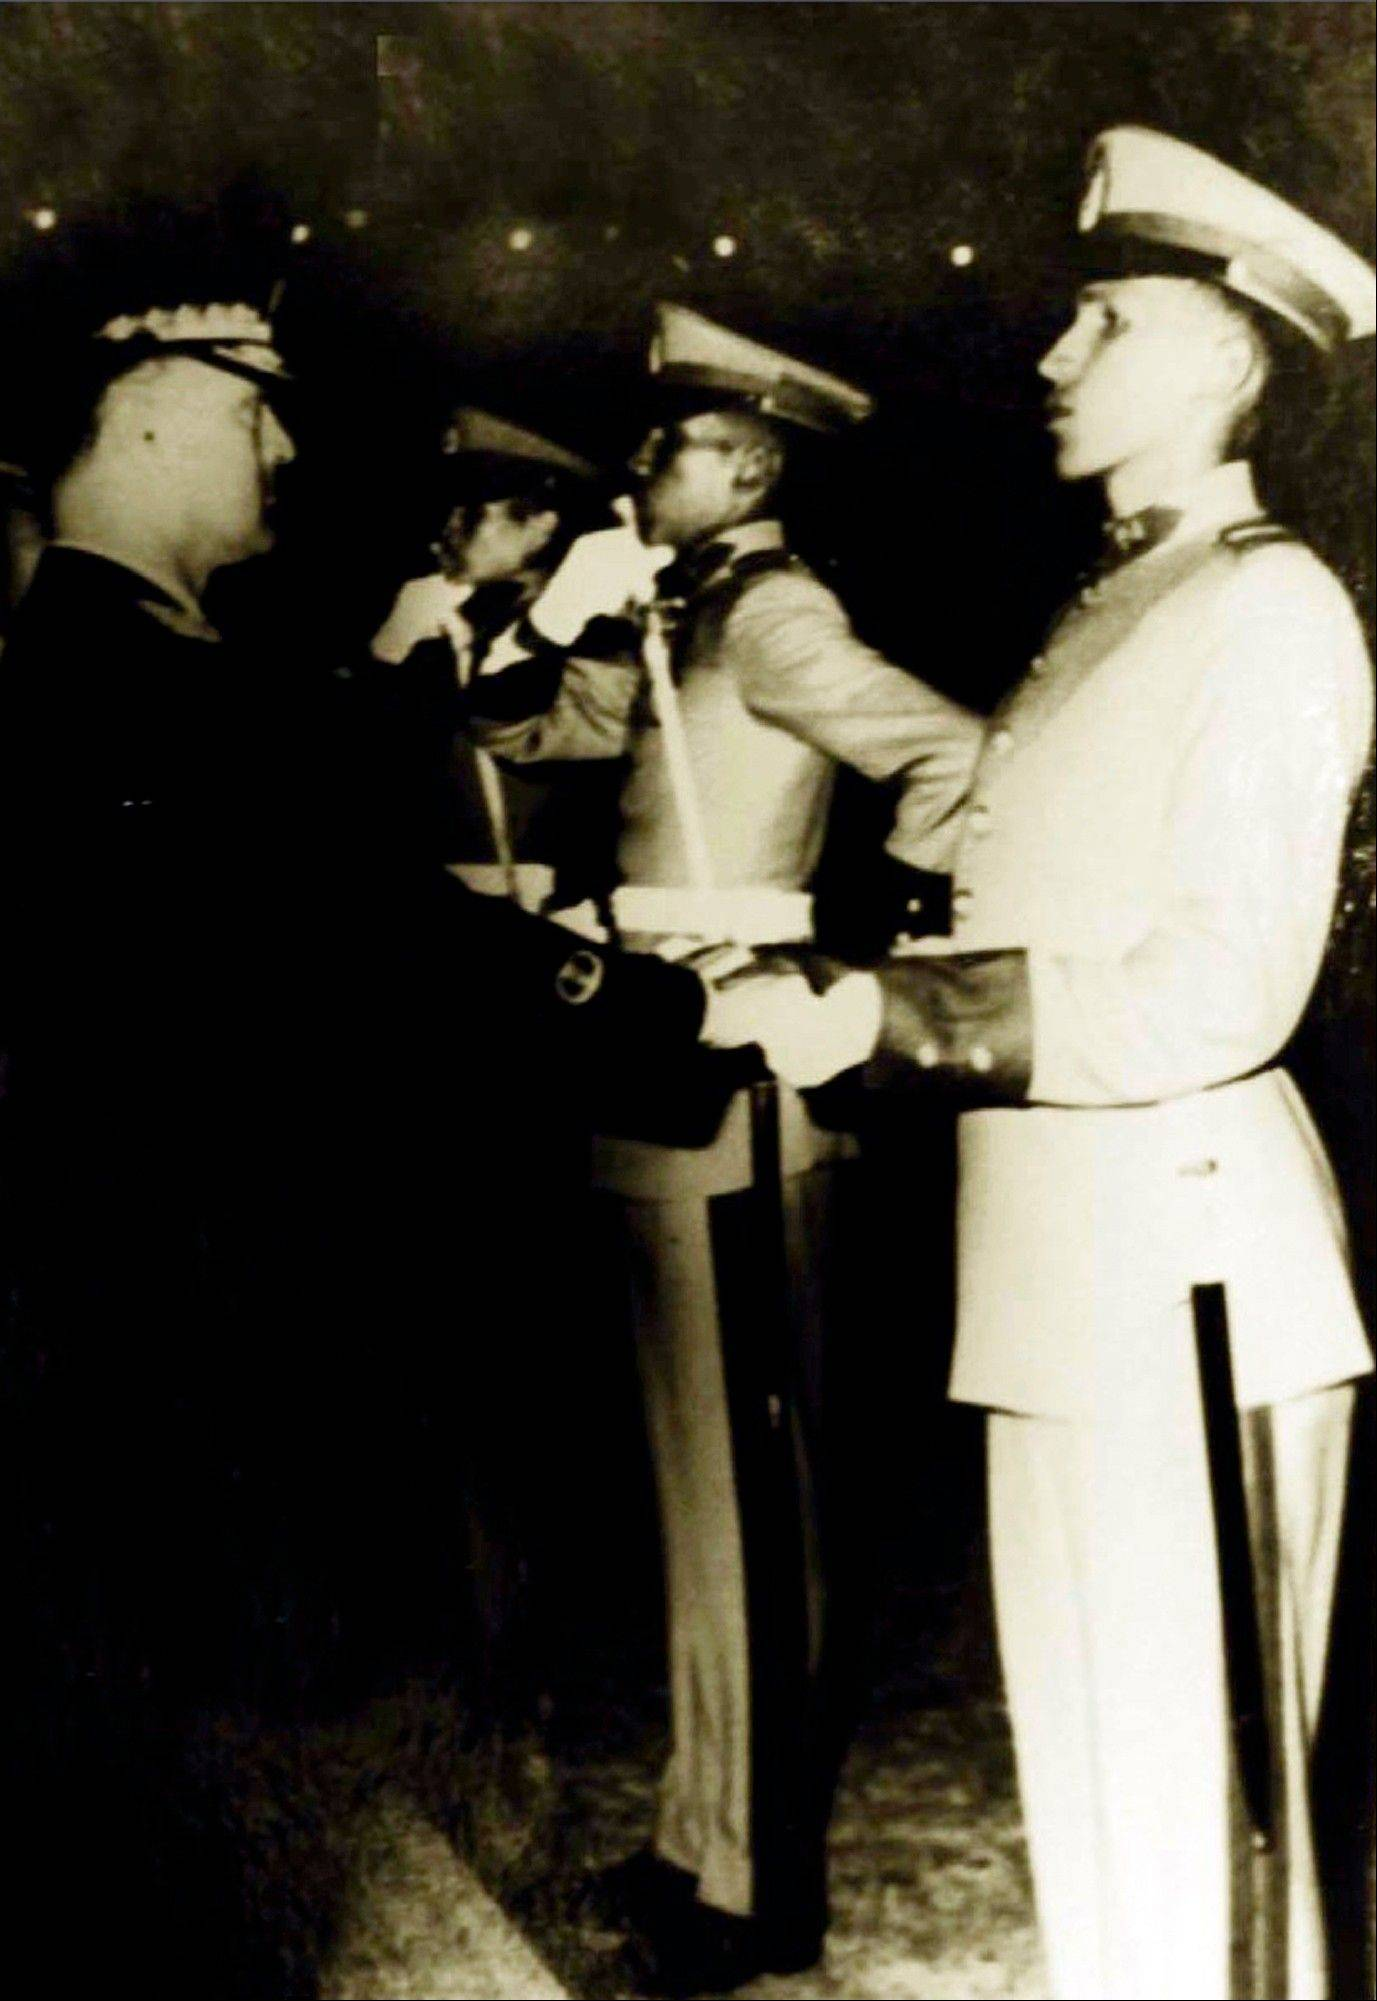 In this April 1971 photo released by Miraflores Press Office, Venezuela's President Hugo Chavez, right, receives a dagger during his ceremony to enter the military academy in Caracas, Venezuela.